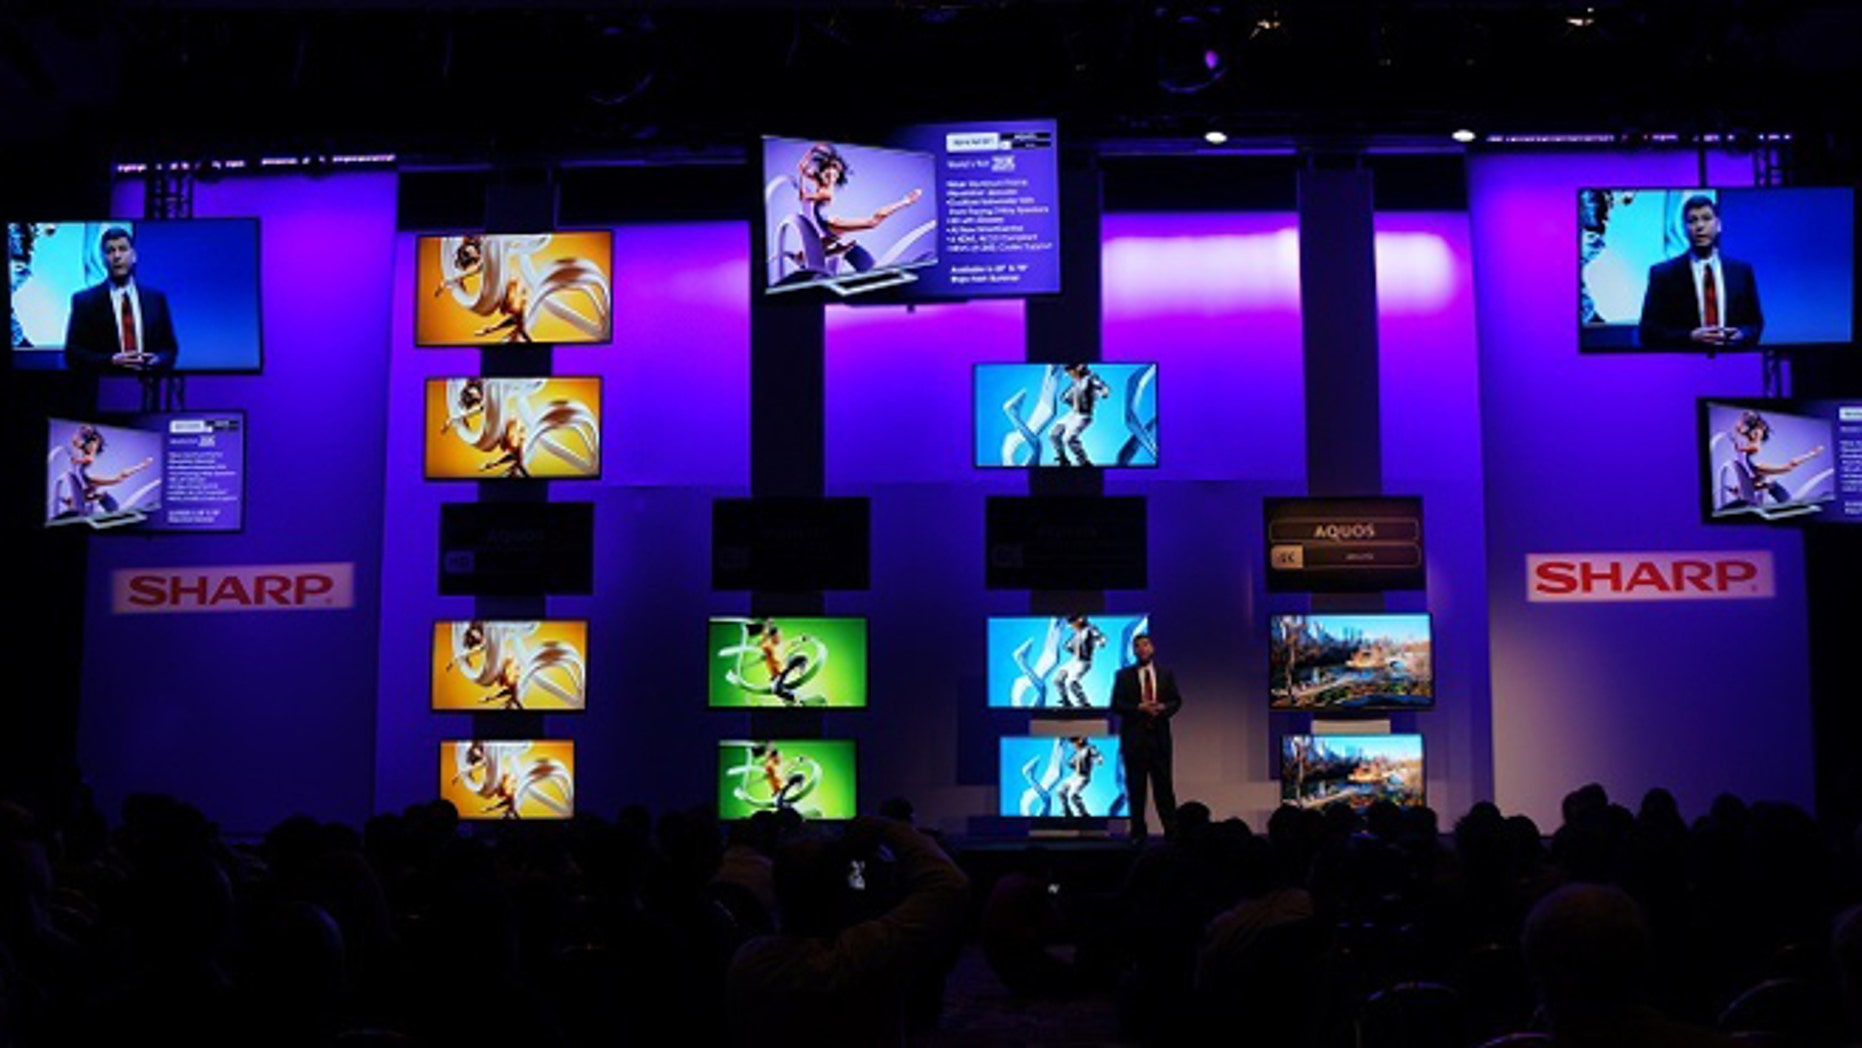 A Sharp executive speaks onstage during a presentation at the 2014 Consumer Electronics Show.